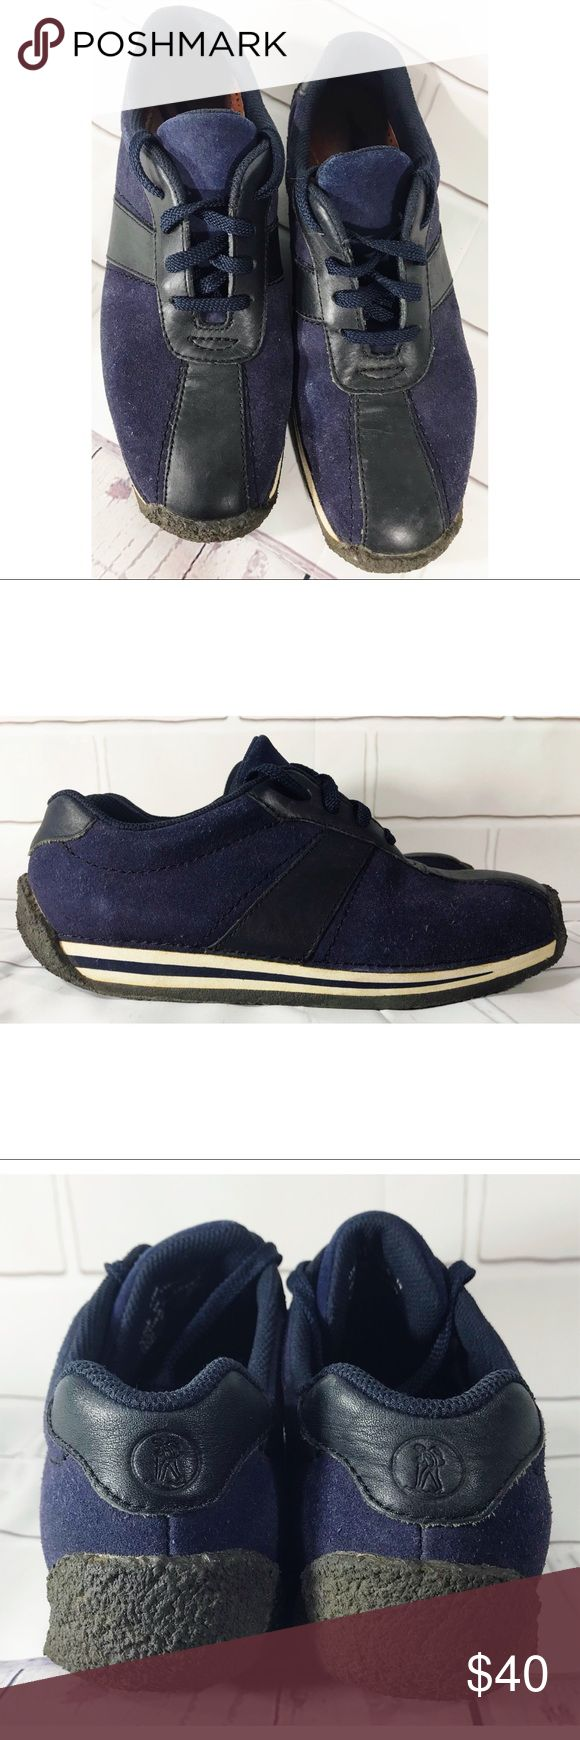 Clarks Originals Suede Leather Lace Oxford Shoes Clarks Originals Suede Leather Athletic Sport Lace Up Oxford Shoes Blue Size 9.5 M. Pre owned in great used condition. Clarks Shoes Oxfords & Derbys